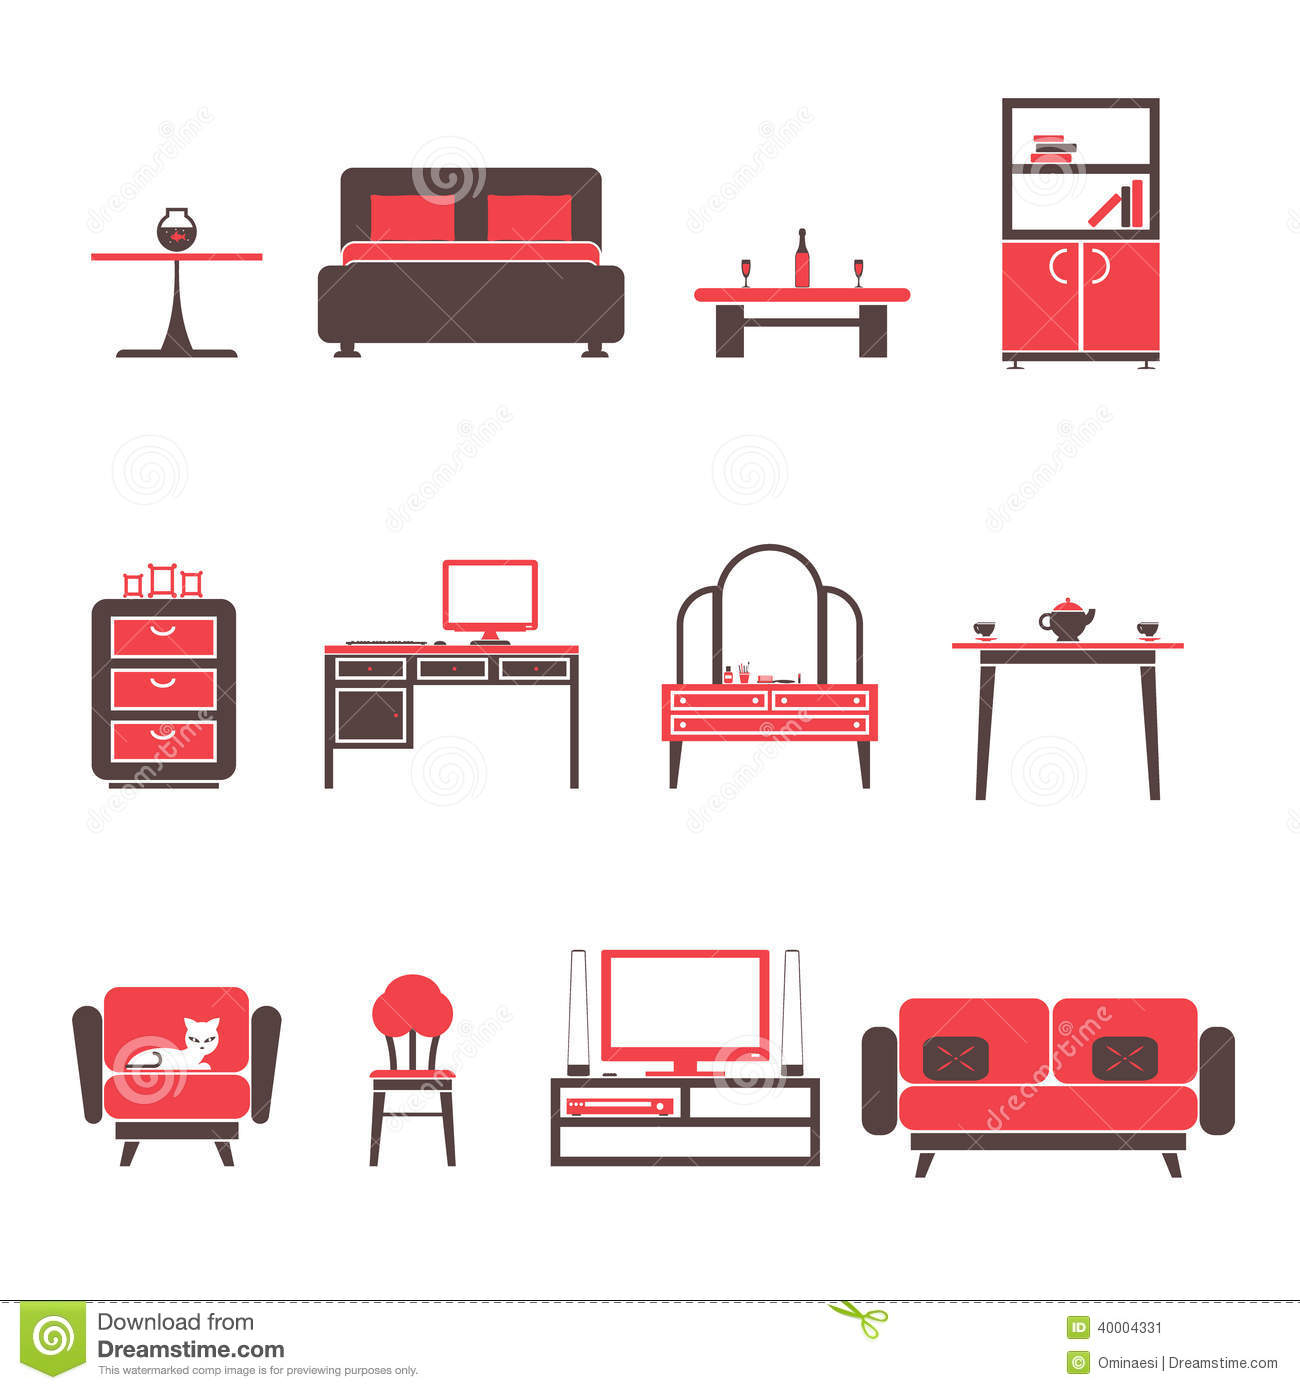 Furniture Ideas For Living Room Stock Vector: Flat Furniture Icons And Symbols Set For Living Room